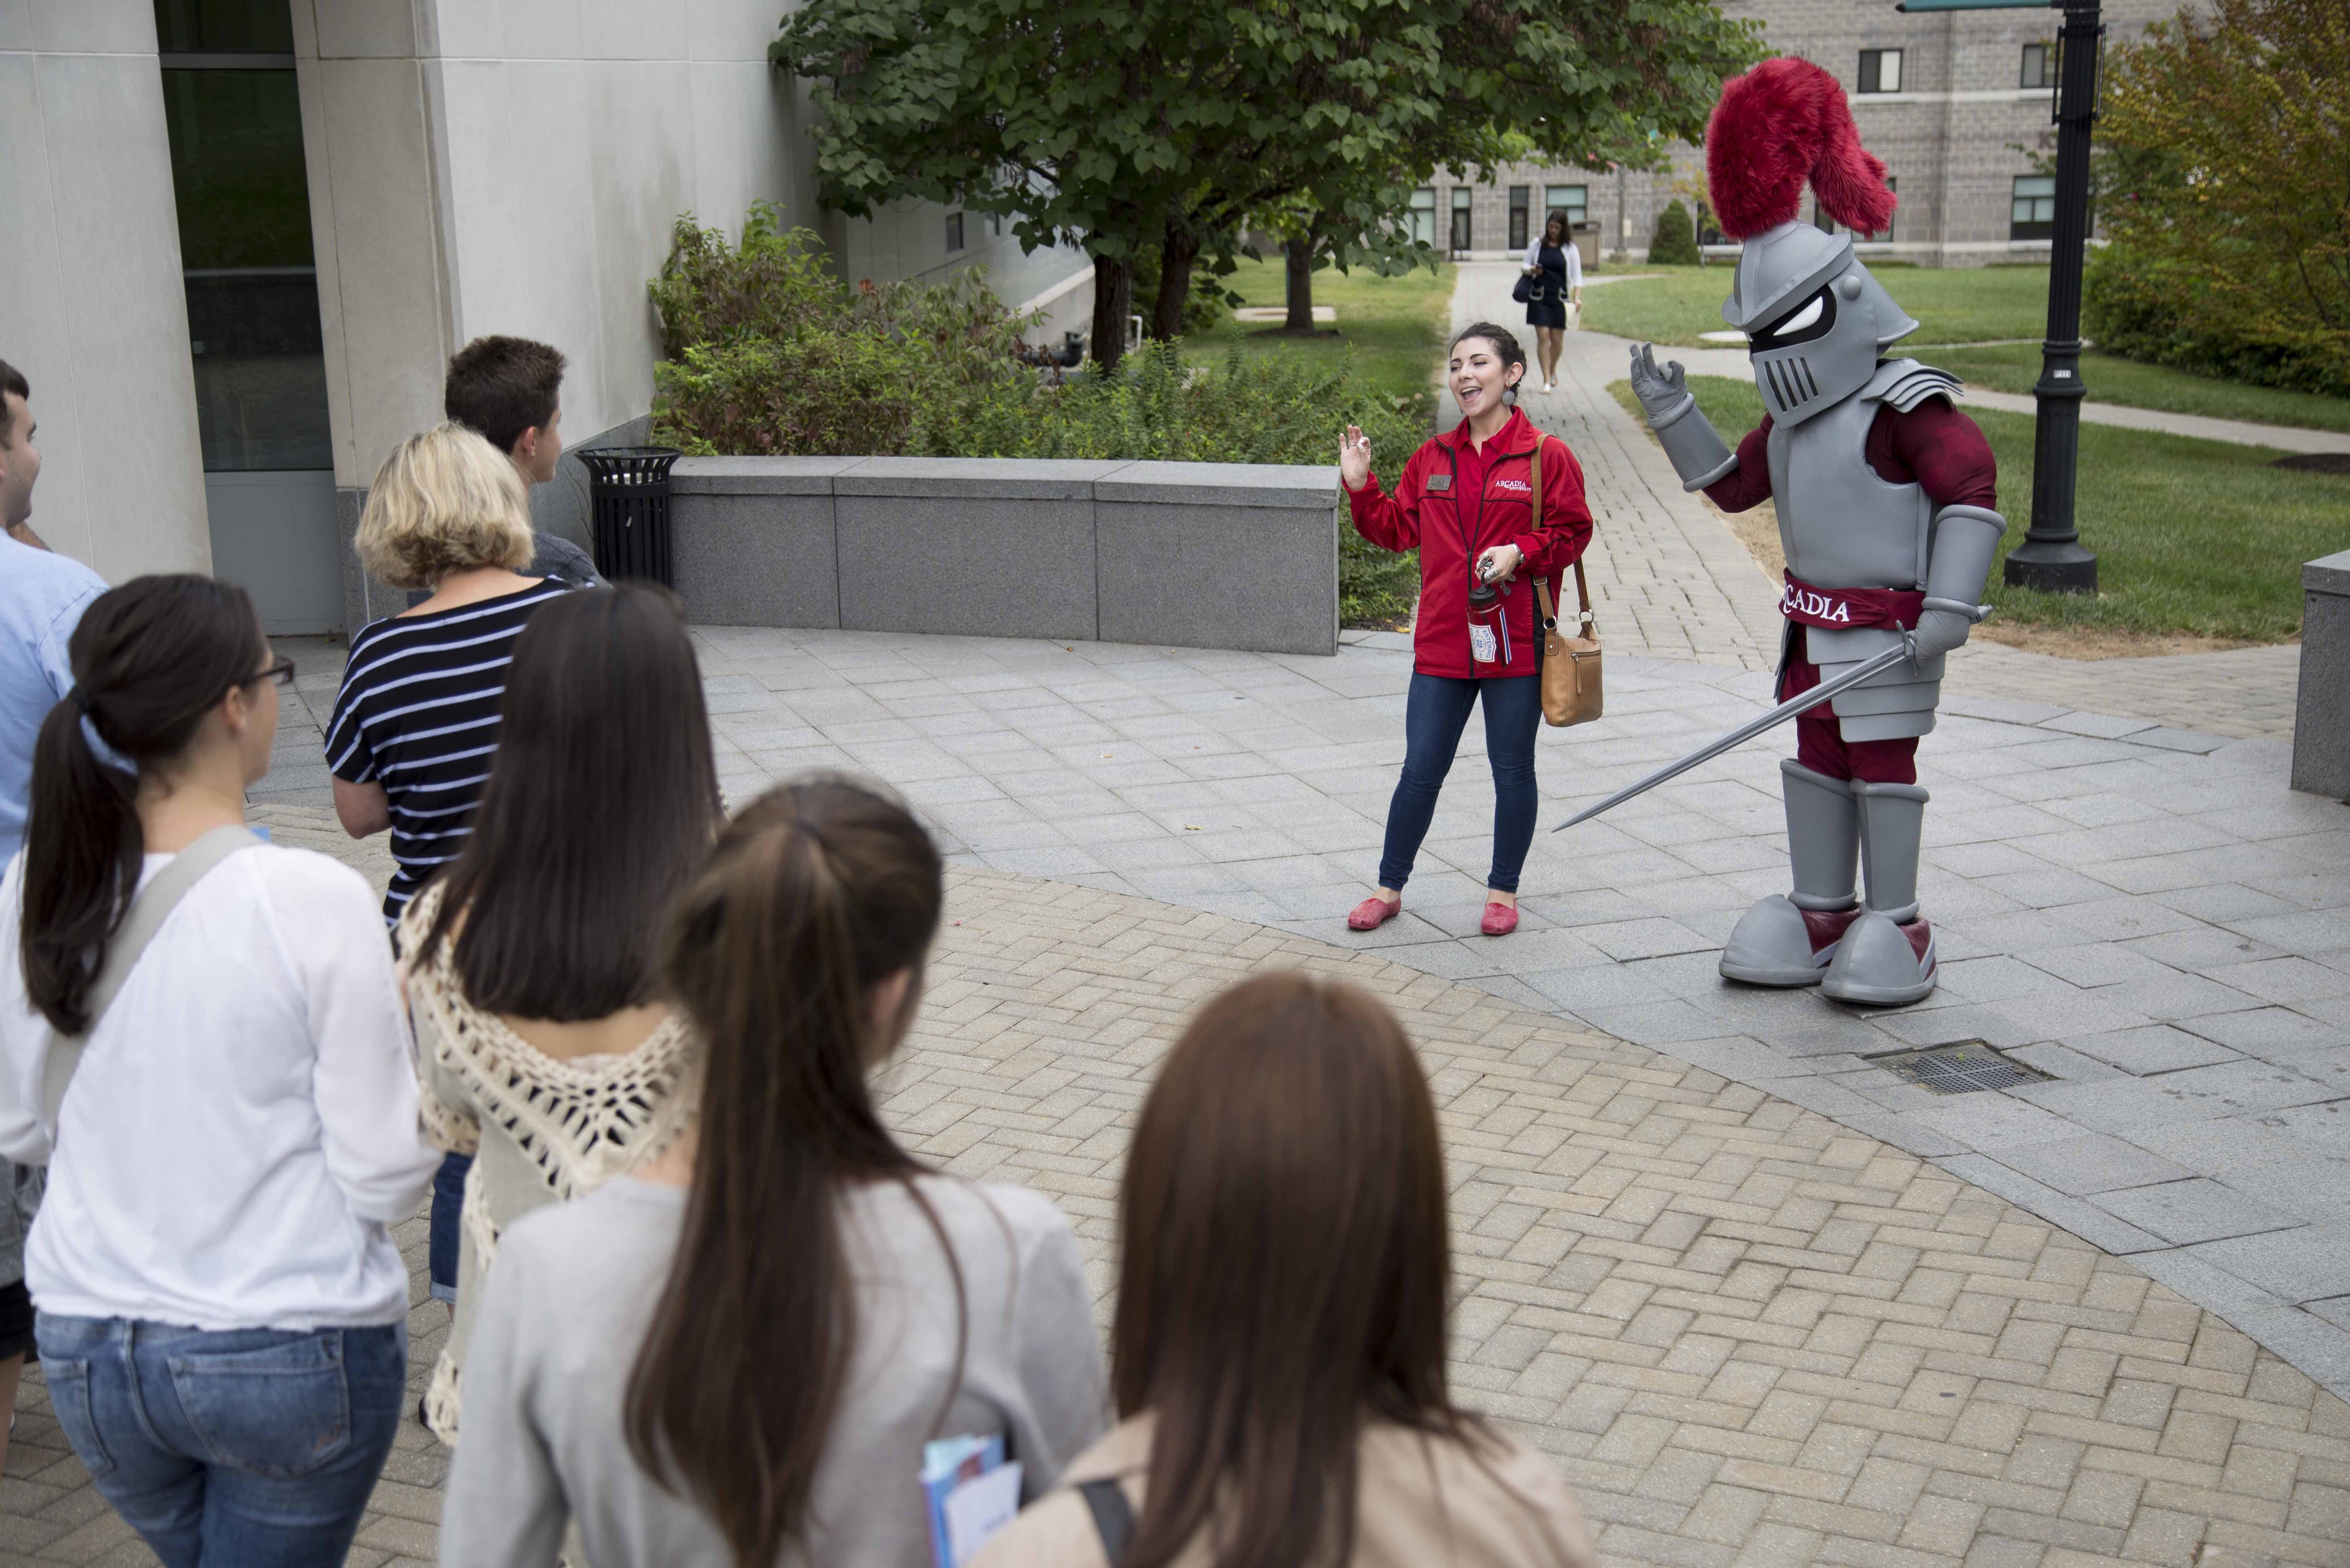 Female ambassador and Knight lead tour group through campus.